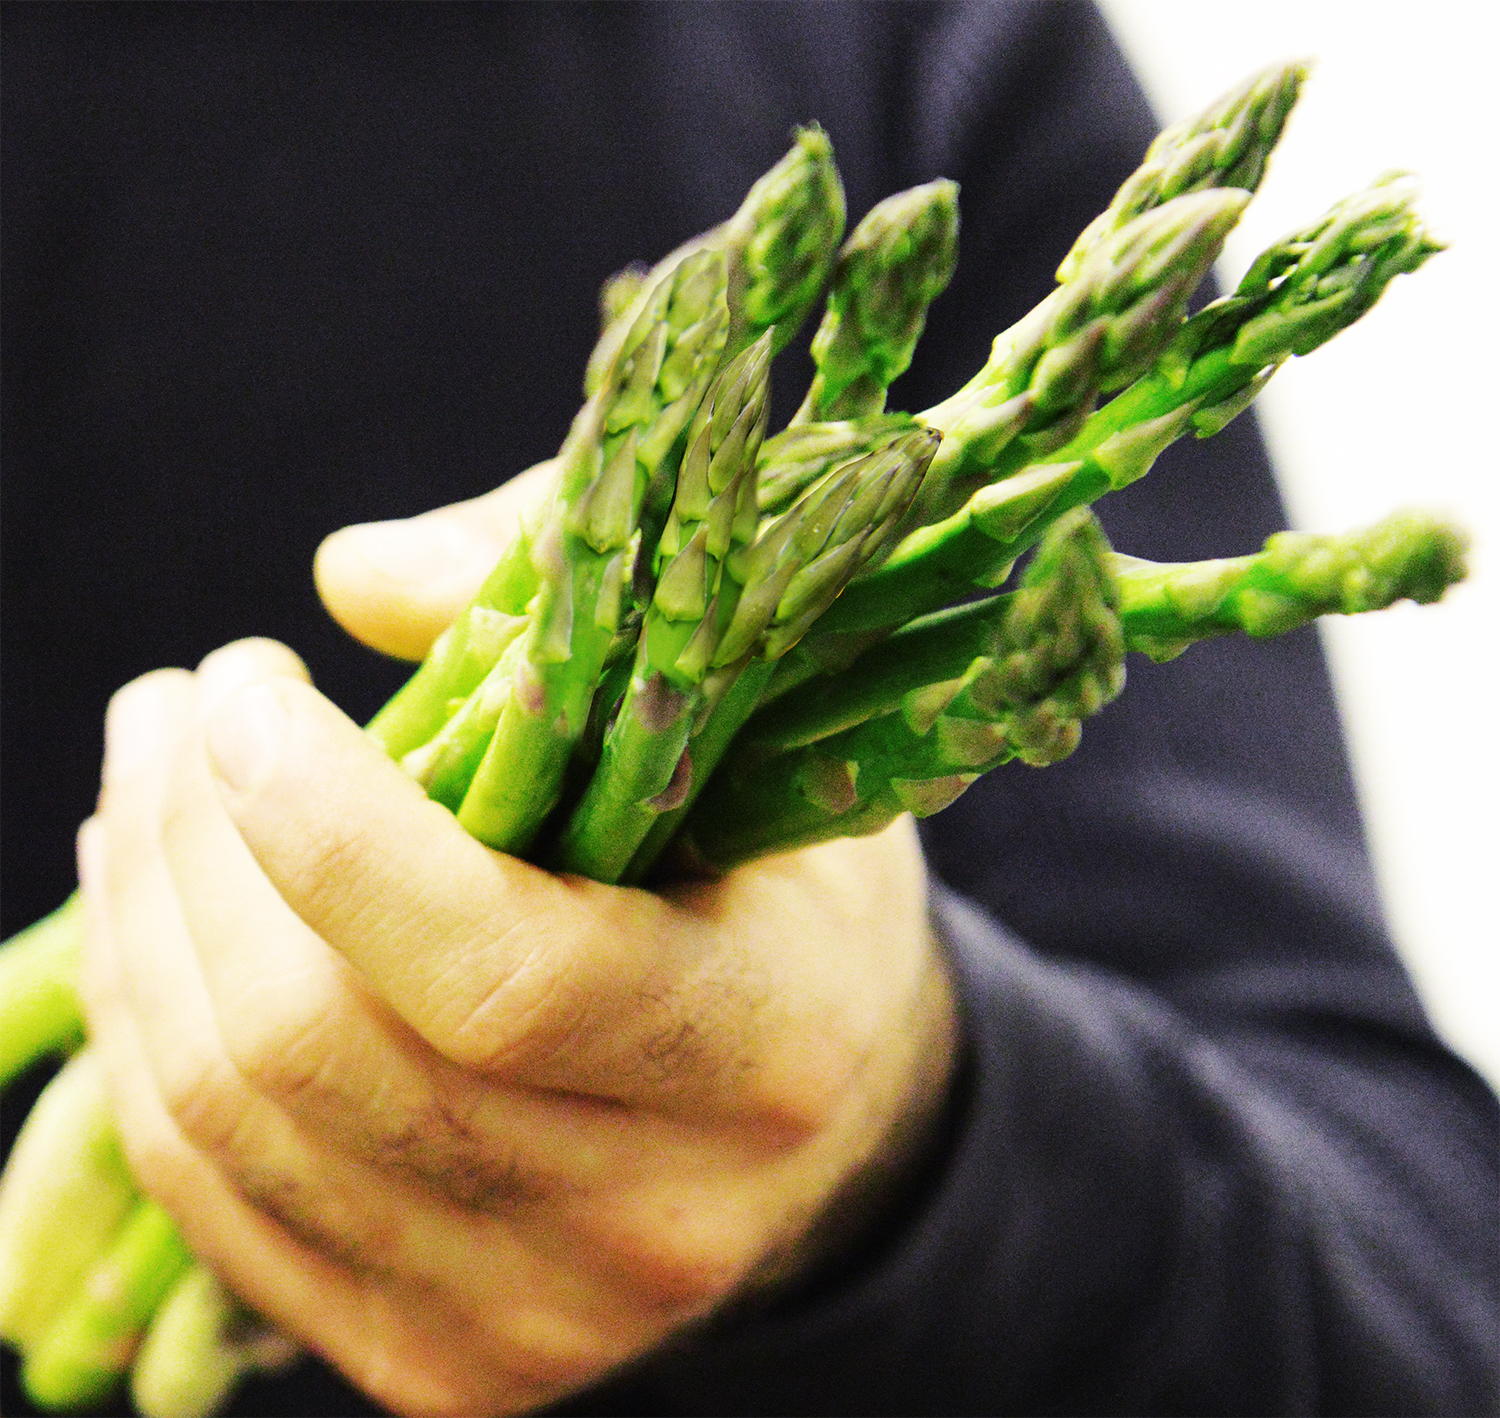 7. Asparagus likes to stand tall in a glass of water. - True or False?